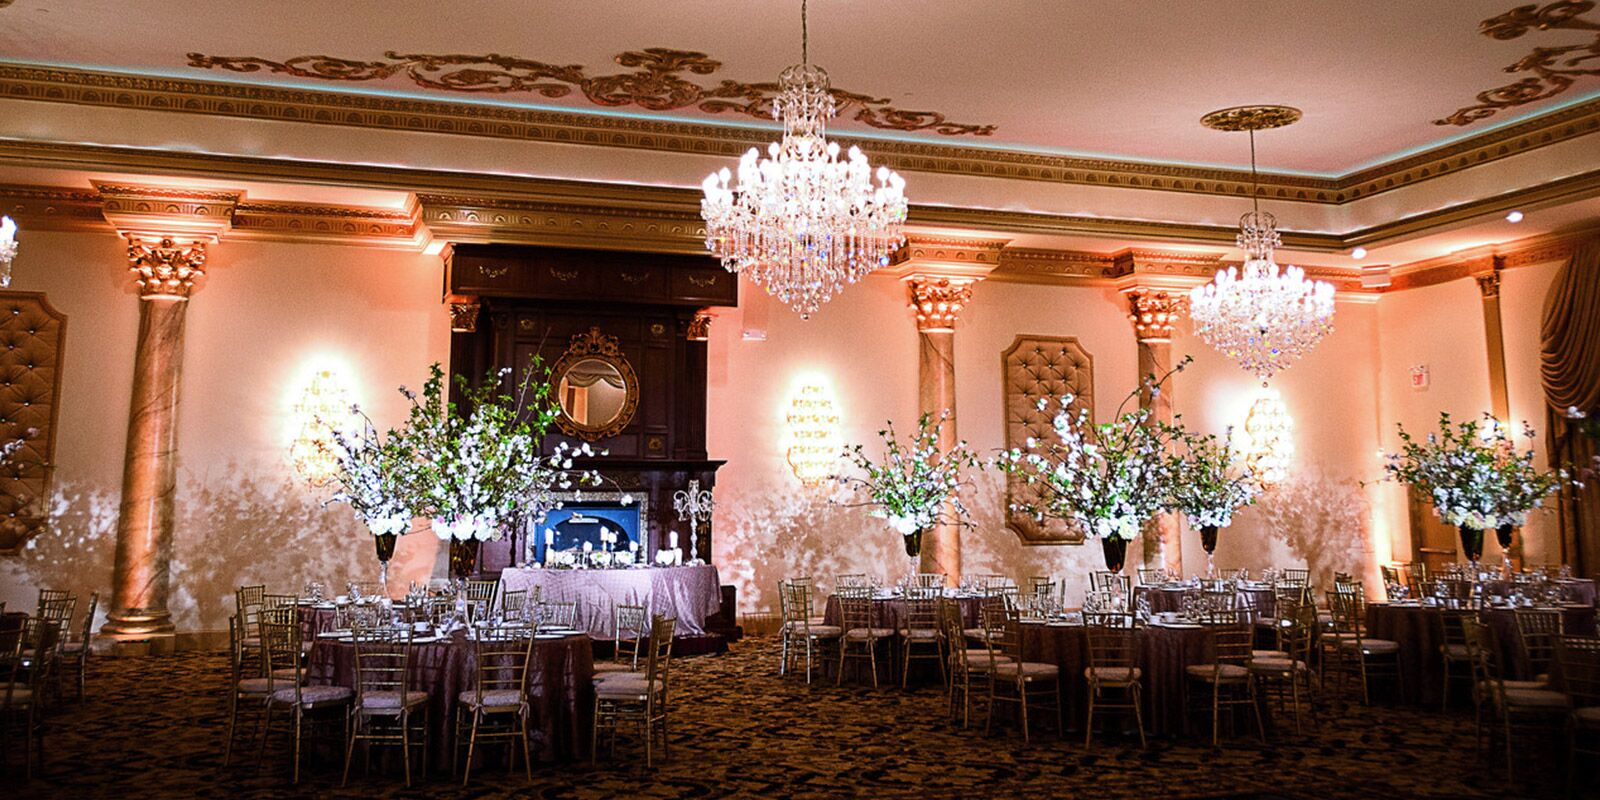 Wedding reception venues in south jersey nj the knot luciens manor junglespirit Choice Image